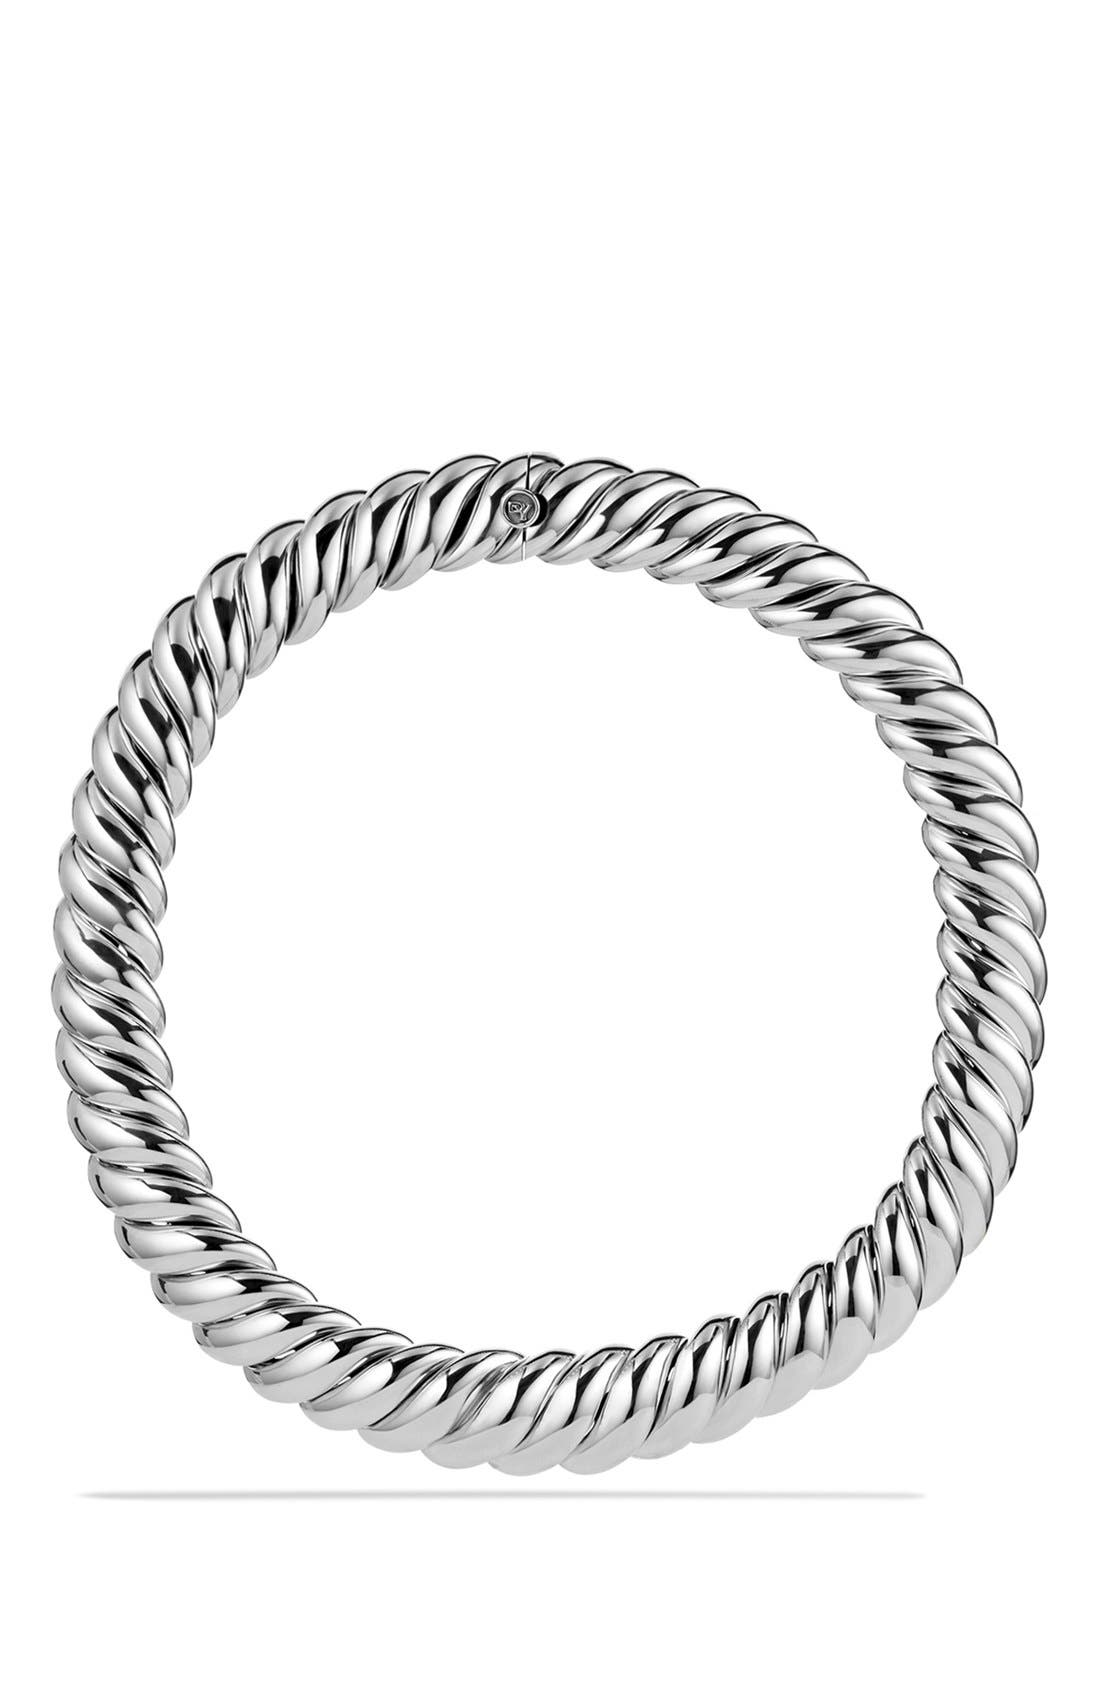 Alternate Image 1 Selected - David Yurman 'Hampton Cable' Necklace